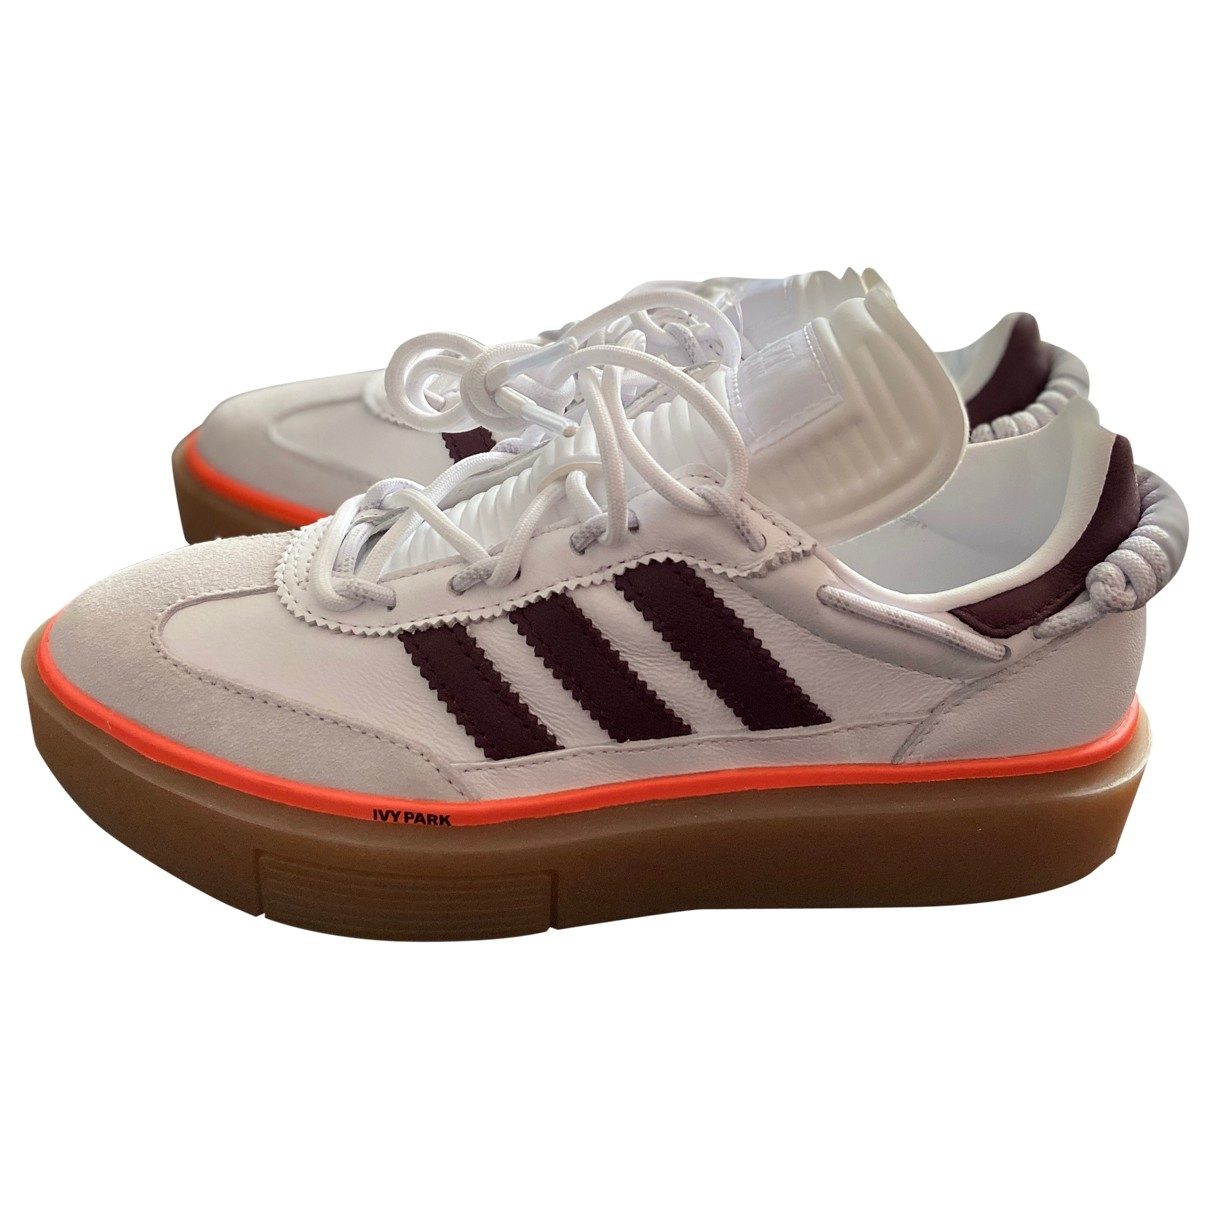 Adidas \N White Leather Trainers for Women 5 US